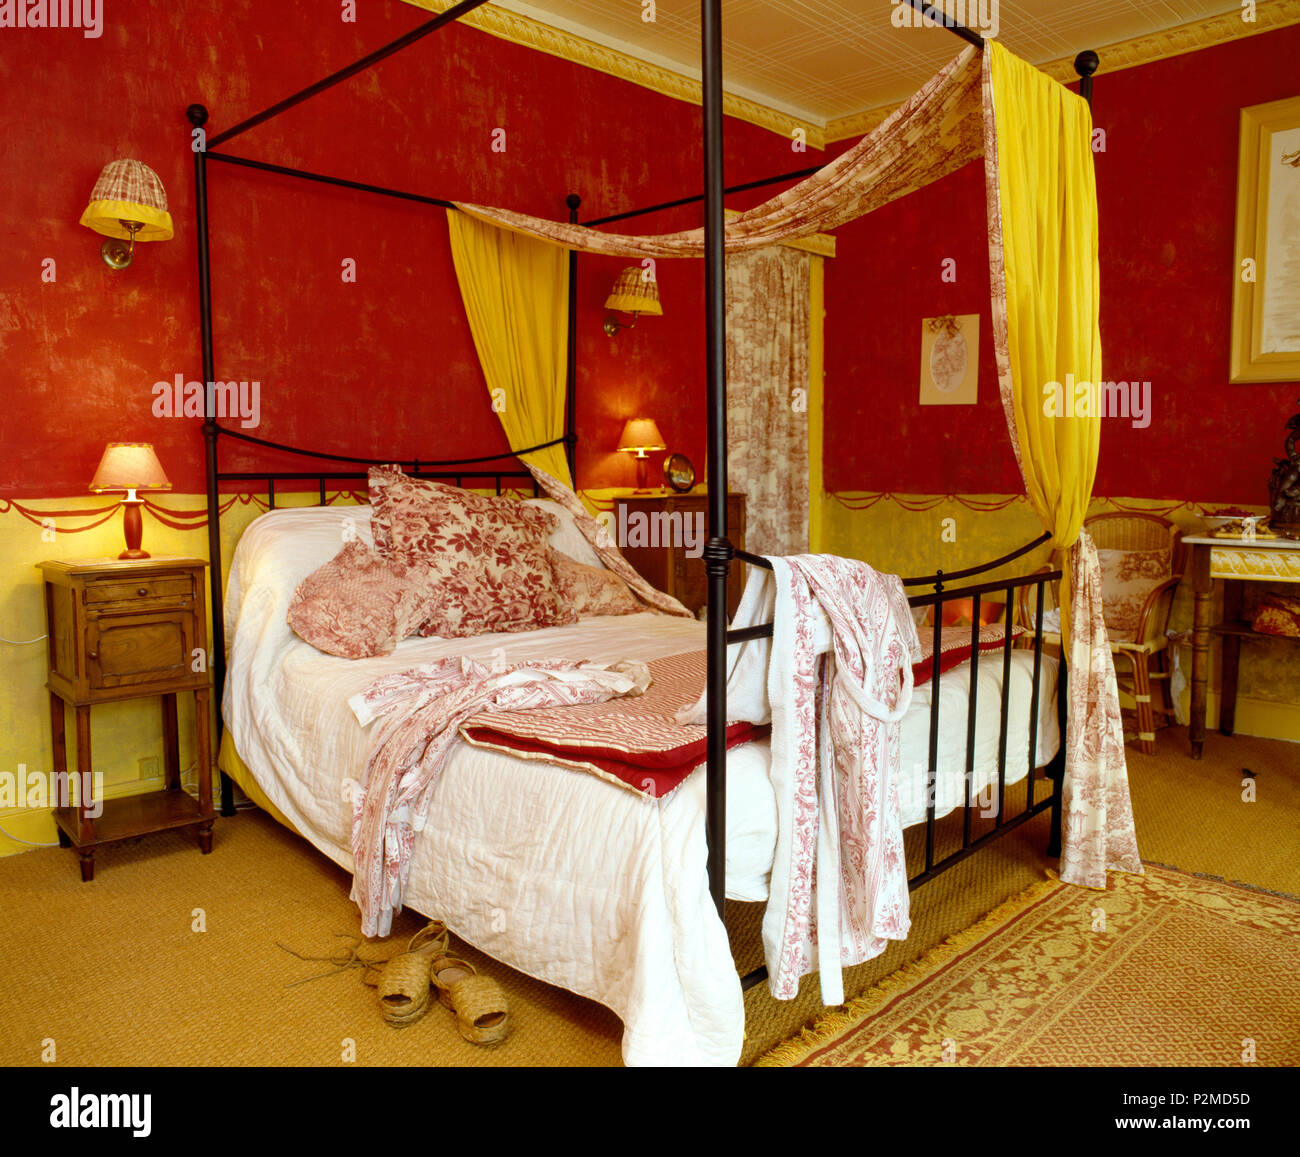 Toile-de-Jouy and yellow drapes on metal four-poster bed with white quilt and Toile-de-Jouy cushions in red French bedroom Stock Photo